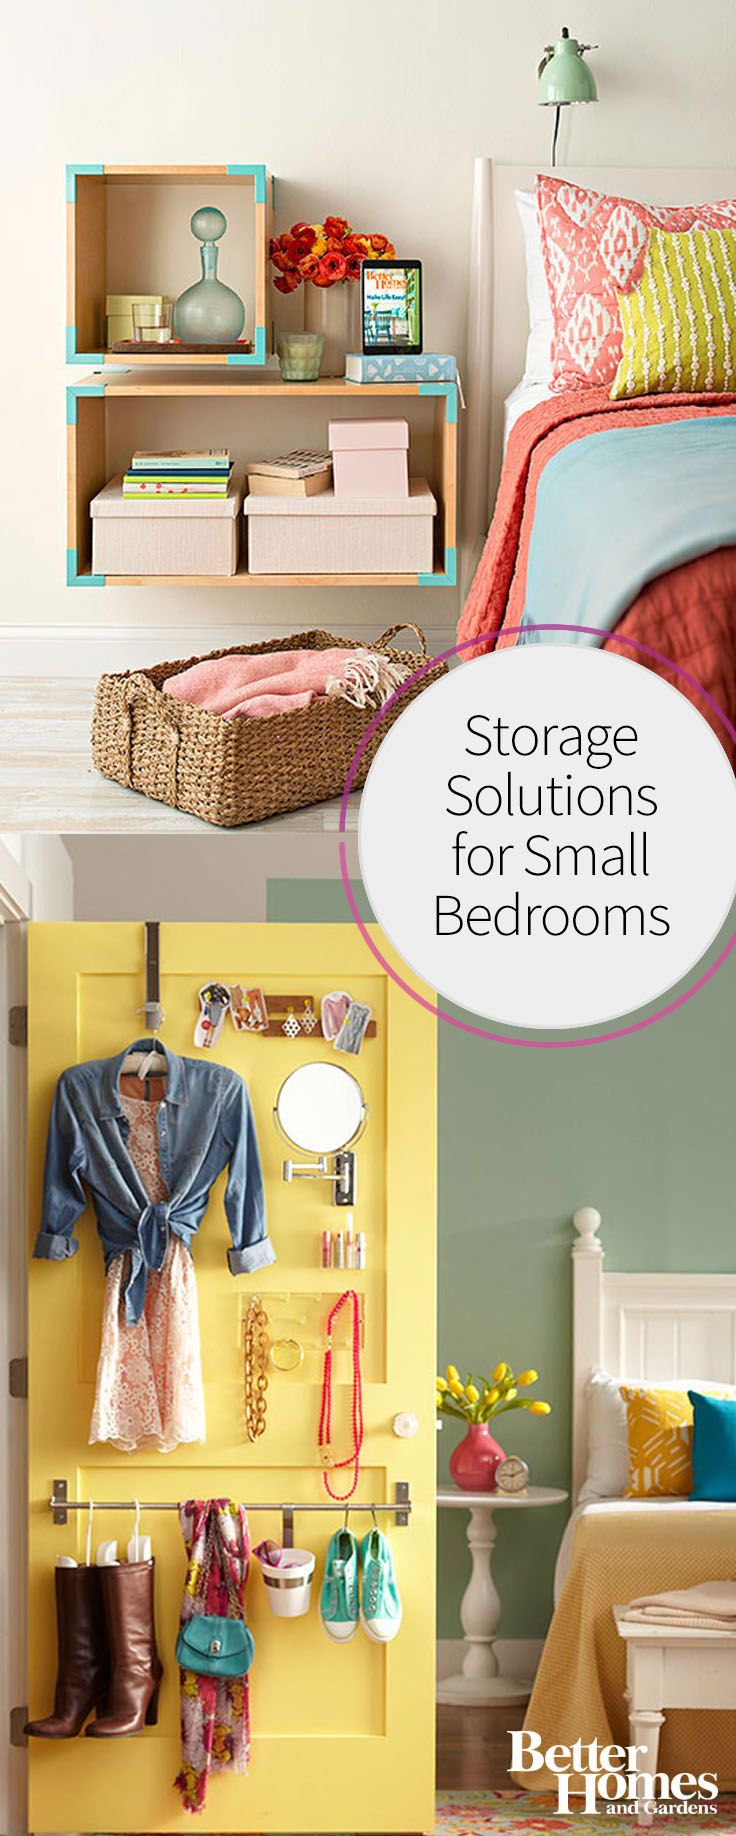 Storage solutions for small bedrooms tiny closet smart for Small space solutions bedroom